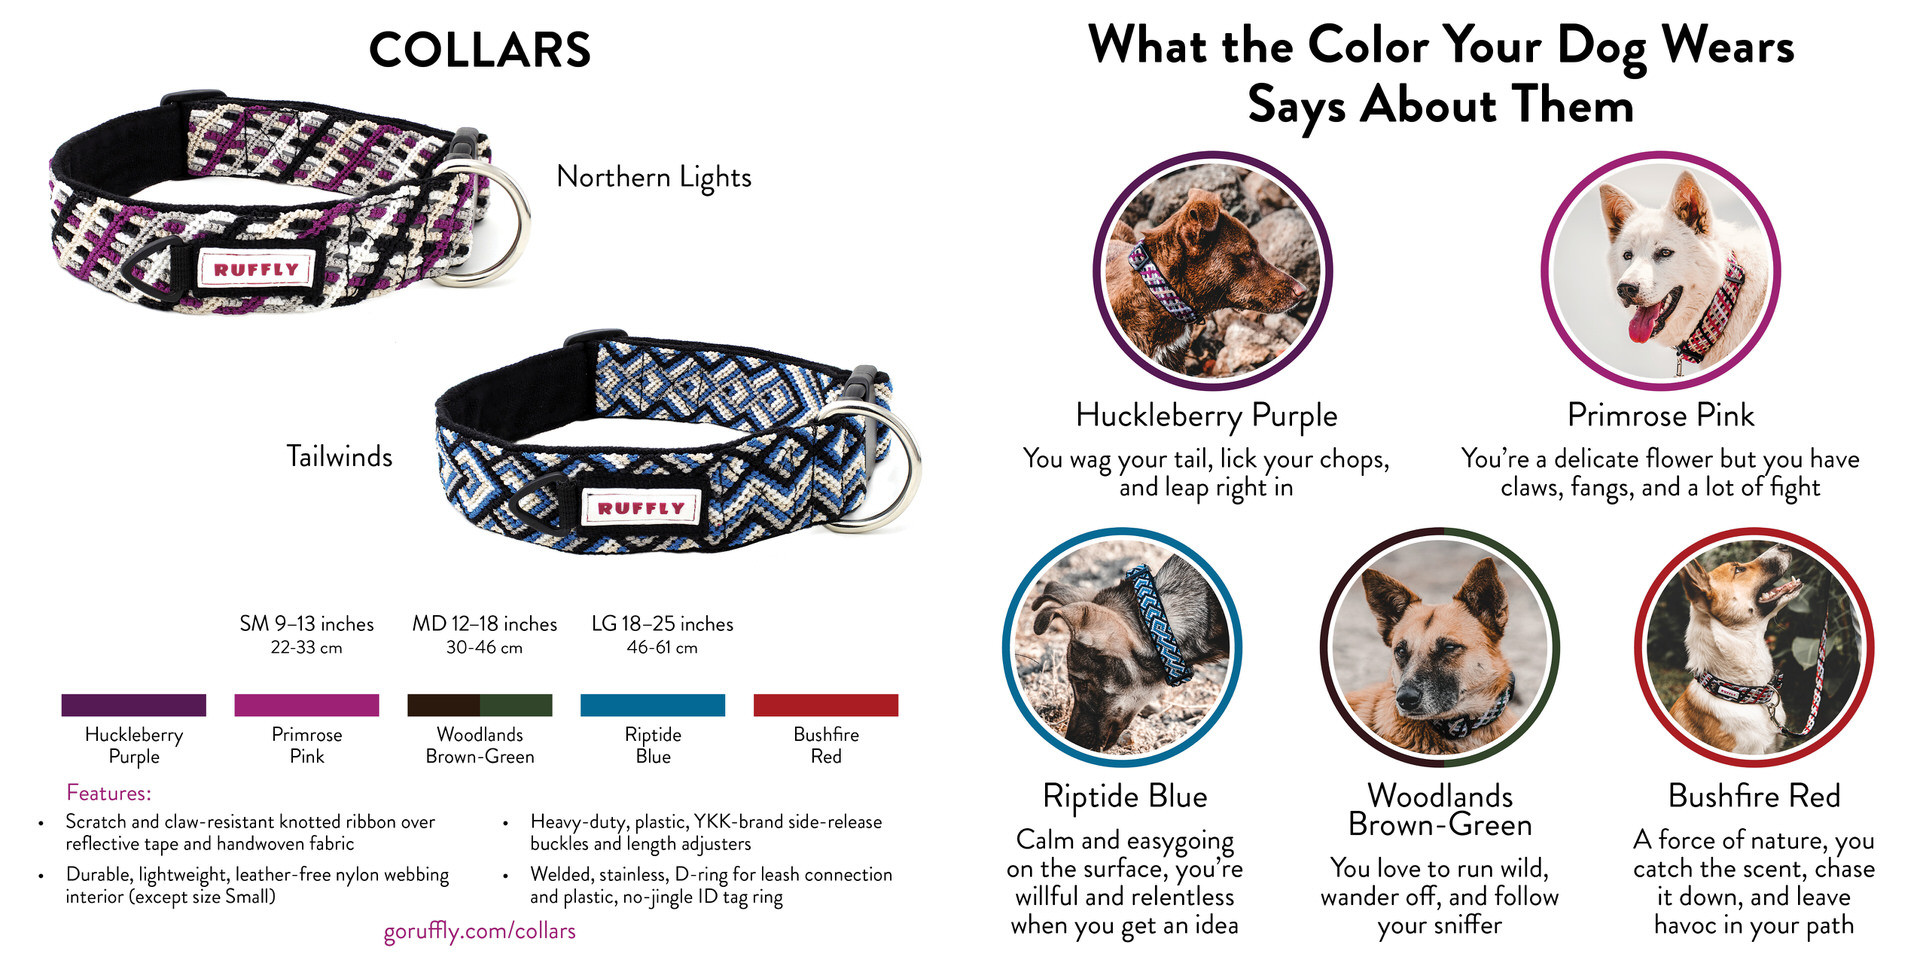 RUFFLY Lookbook – Pages 4 and 5 – Knotted Collars and About the Five Colors